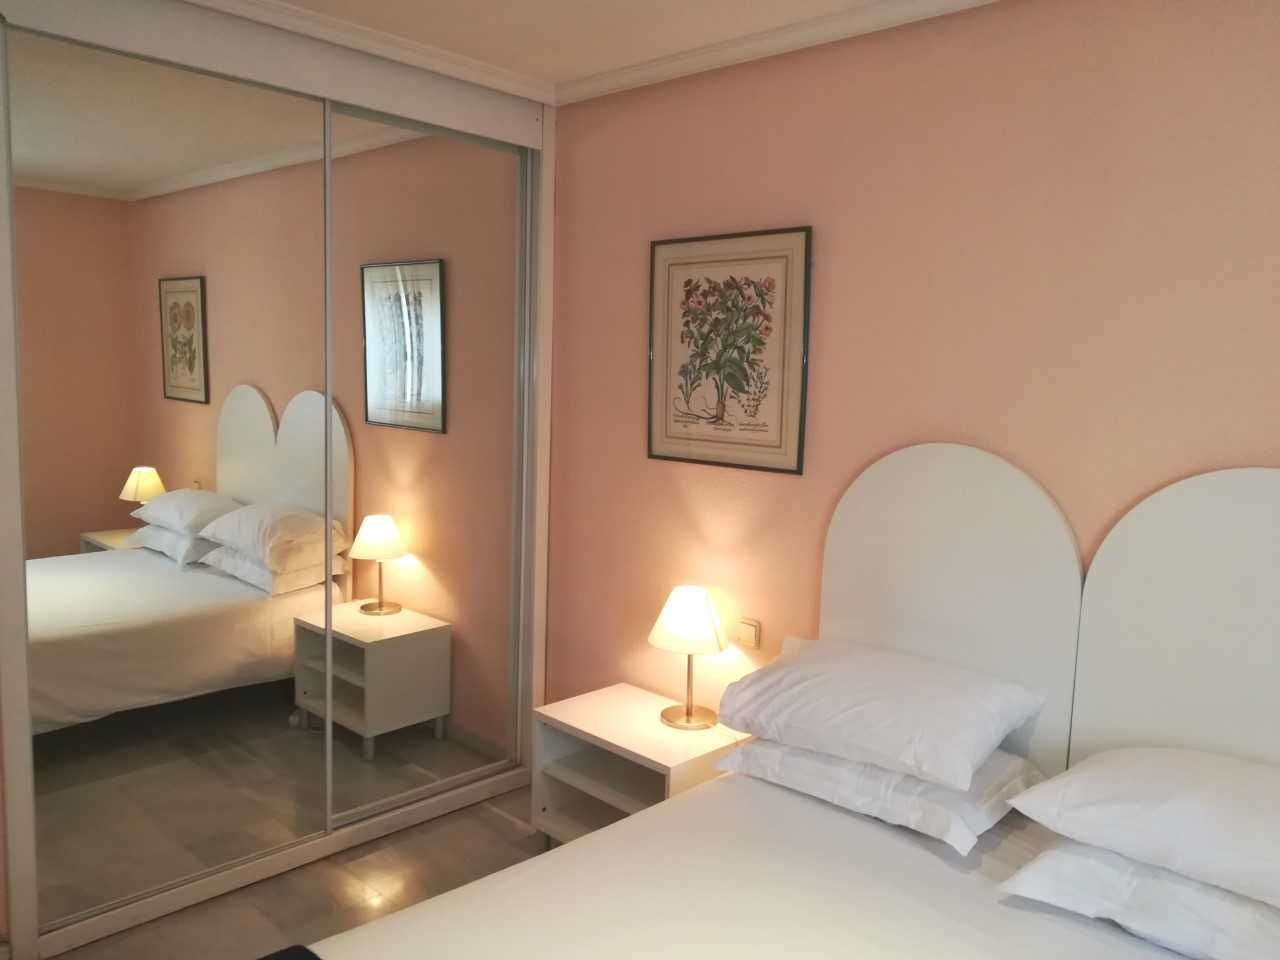 Double bed at Goya Apartments